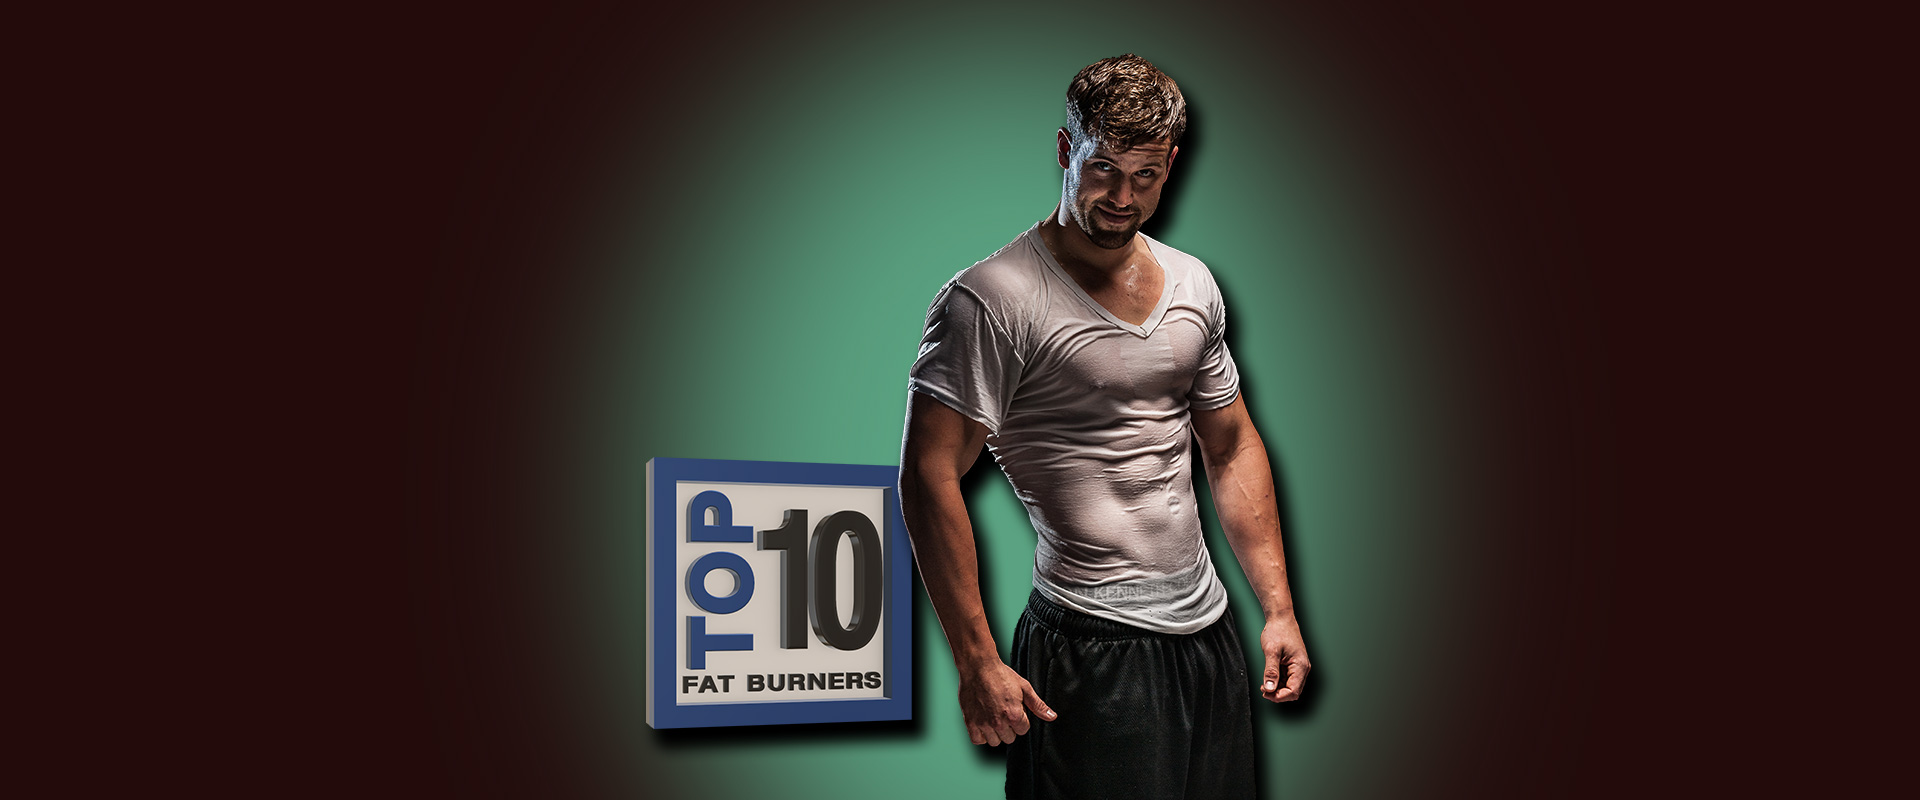 Top 10 Fat Burners for 2017